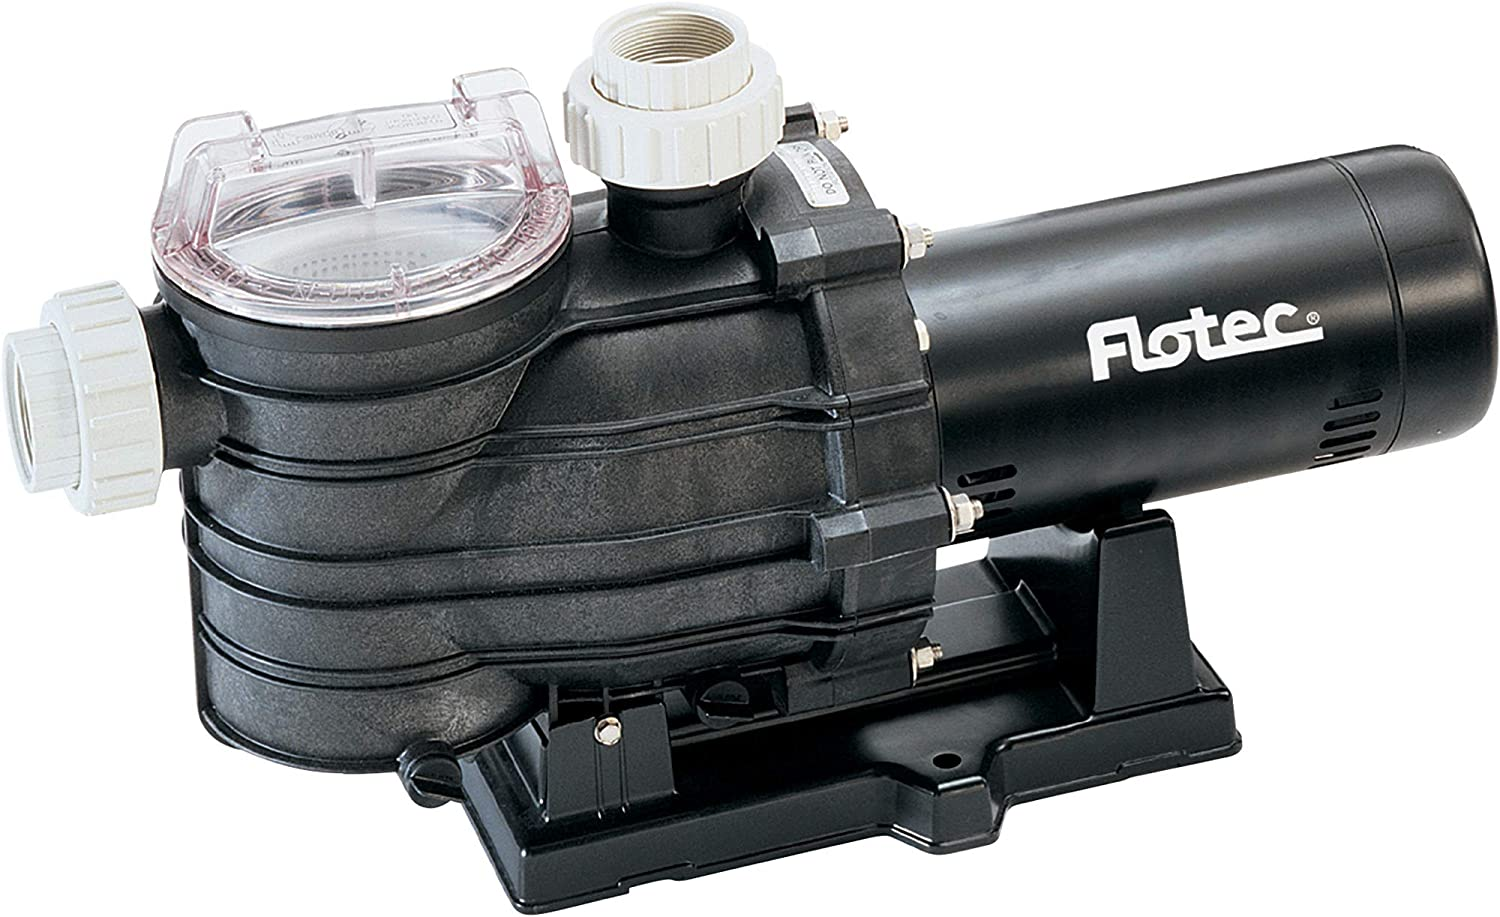 Flotec AT251501 In-Ground Pool Pump, 1-1/2 HP, Corrosion Resistant Thermoplastic, Large Capacity Trap With See-Through Lid, 112GPM, 32PSI, 2-In Suction/Discharge Pipe, Adjustable 115V or 230V